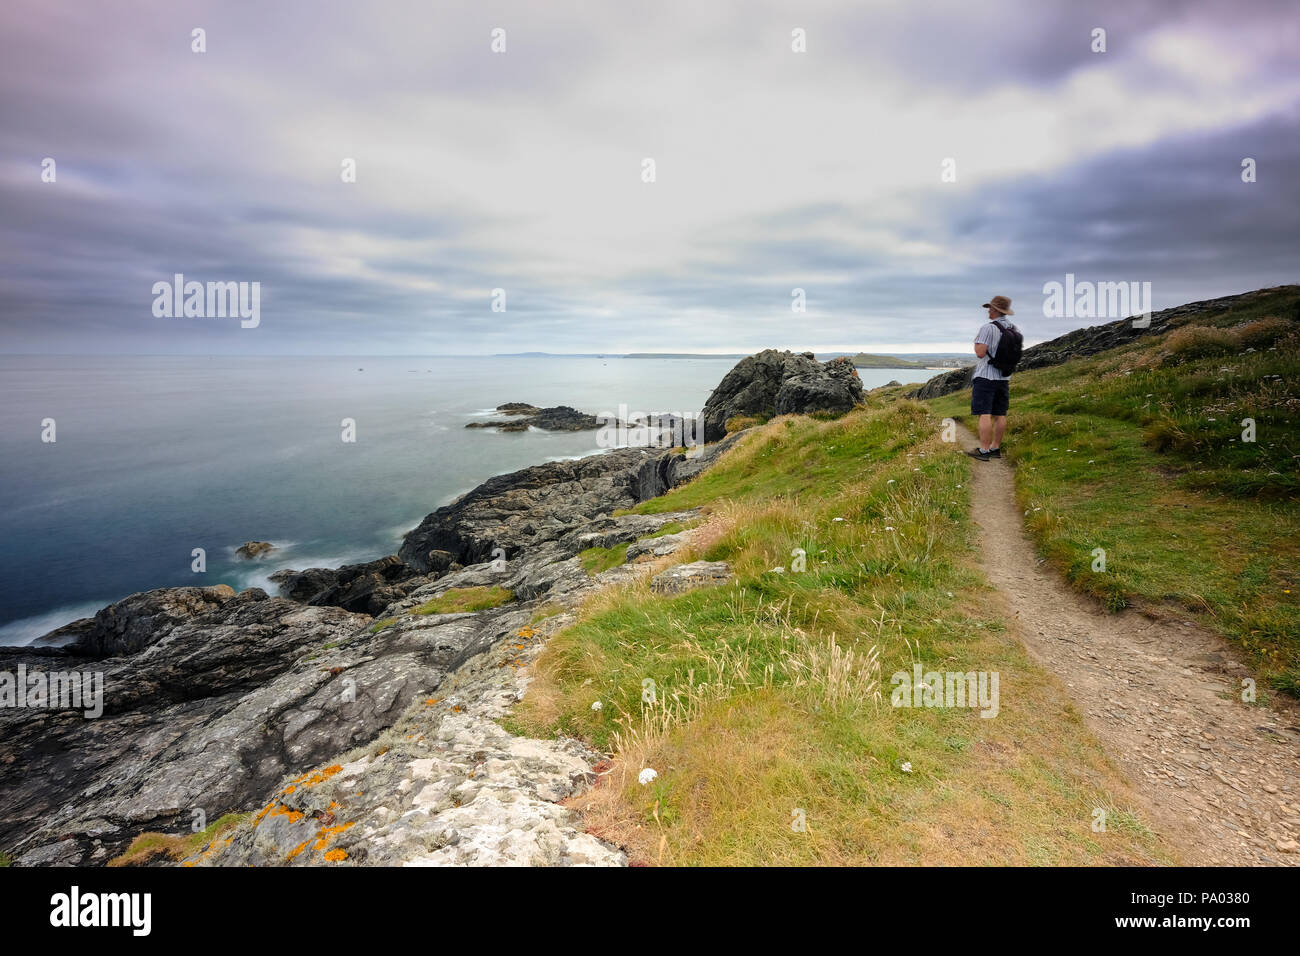 Man walking alonfg the south west coast path close to St Ives taking in the view - Stock Image